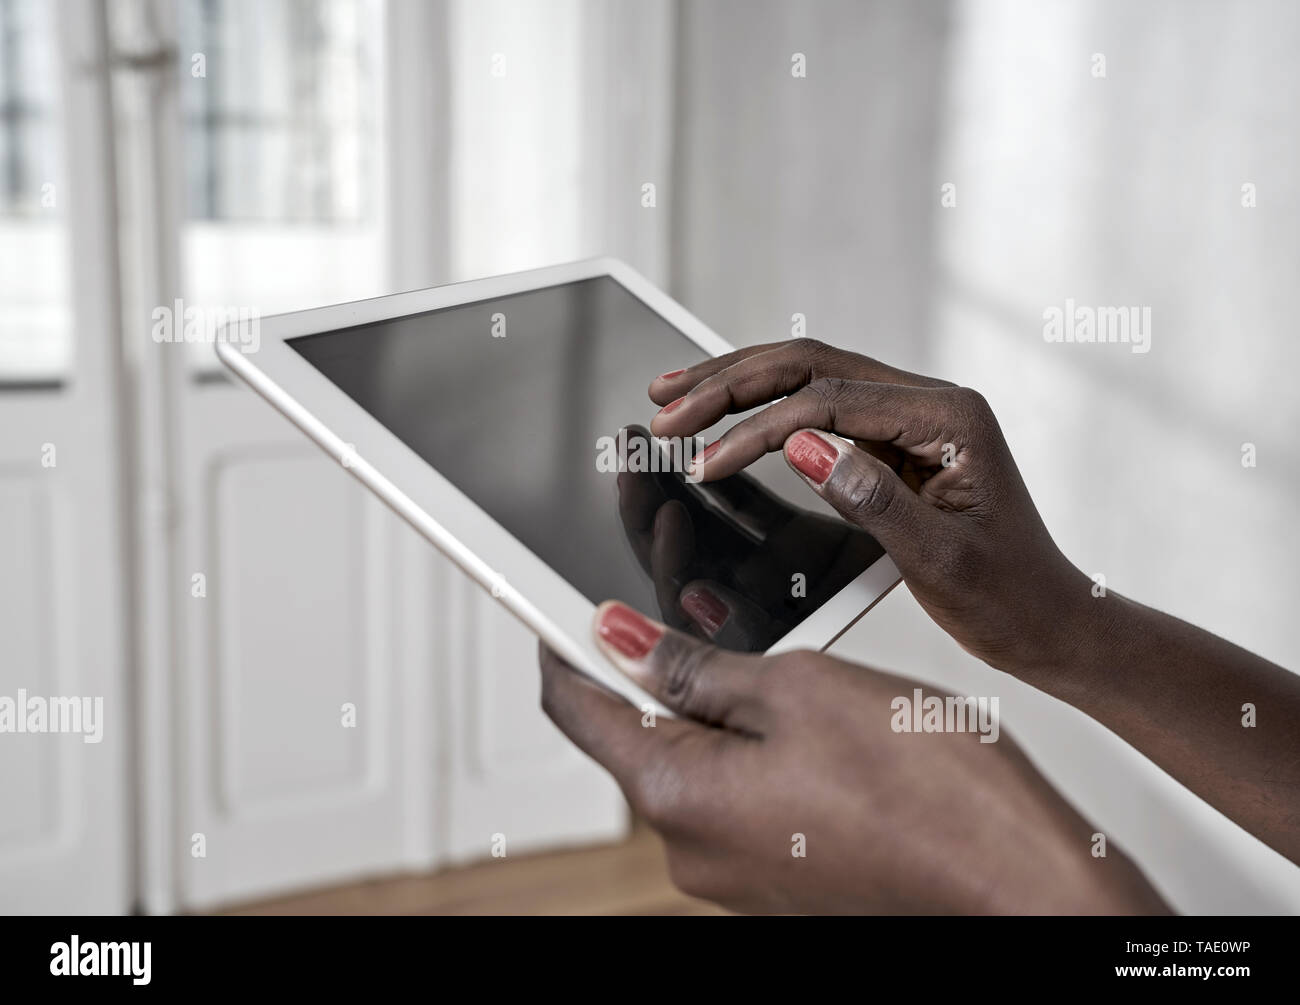 Woman's hands using digital tablet, close-up Stock Photo